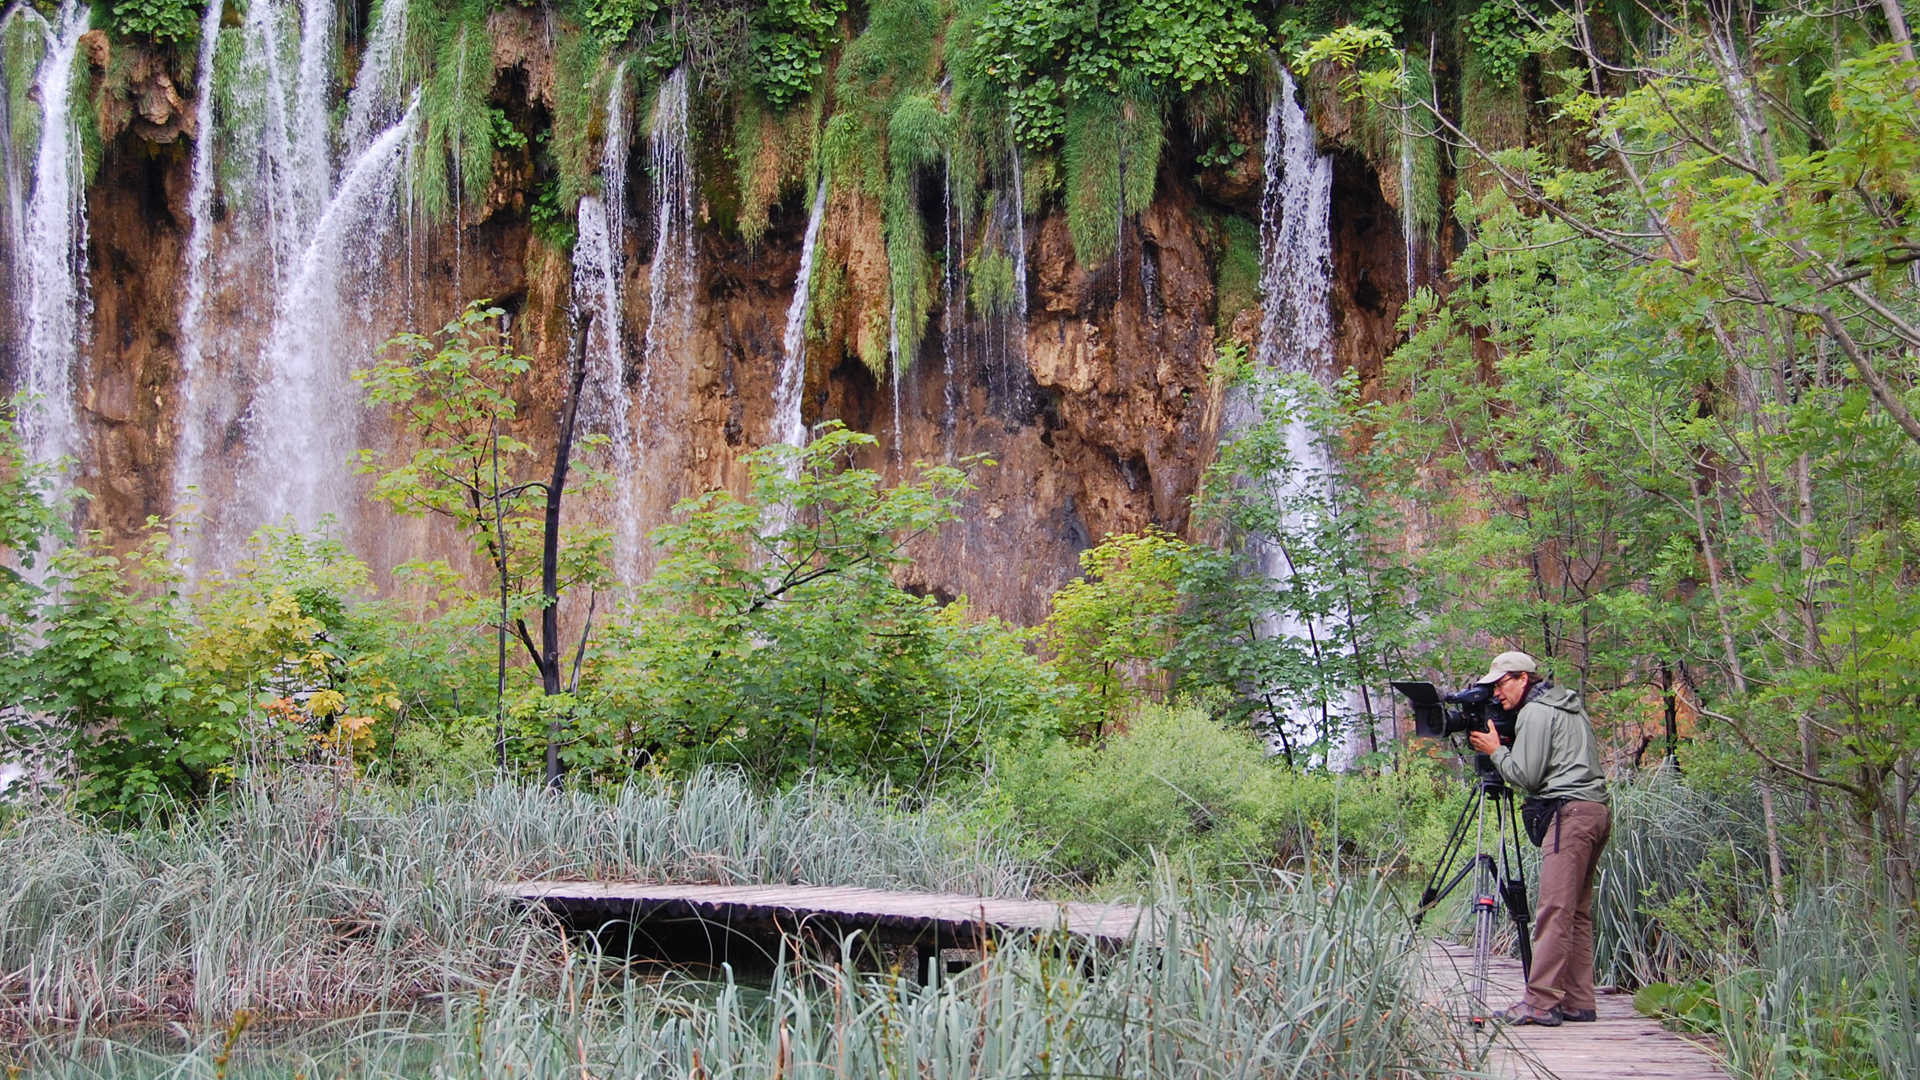 Cameraman Karel Bauer in Plitvice Lakes National Park, Croatia